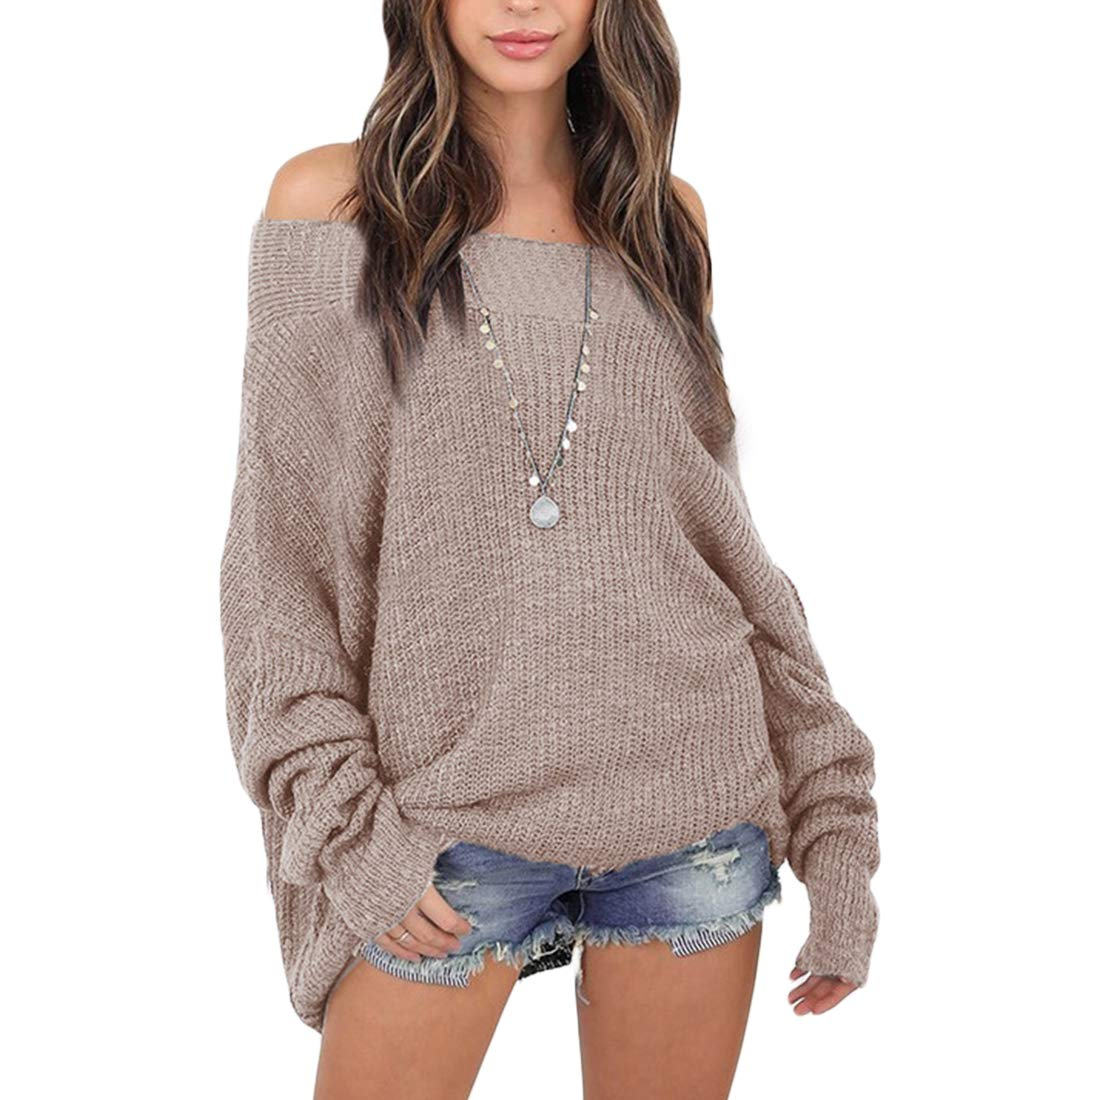 Belgius Shoulder Off Sweater Women Casual Loose Oversized Knitted Pullover Top